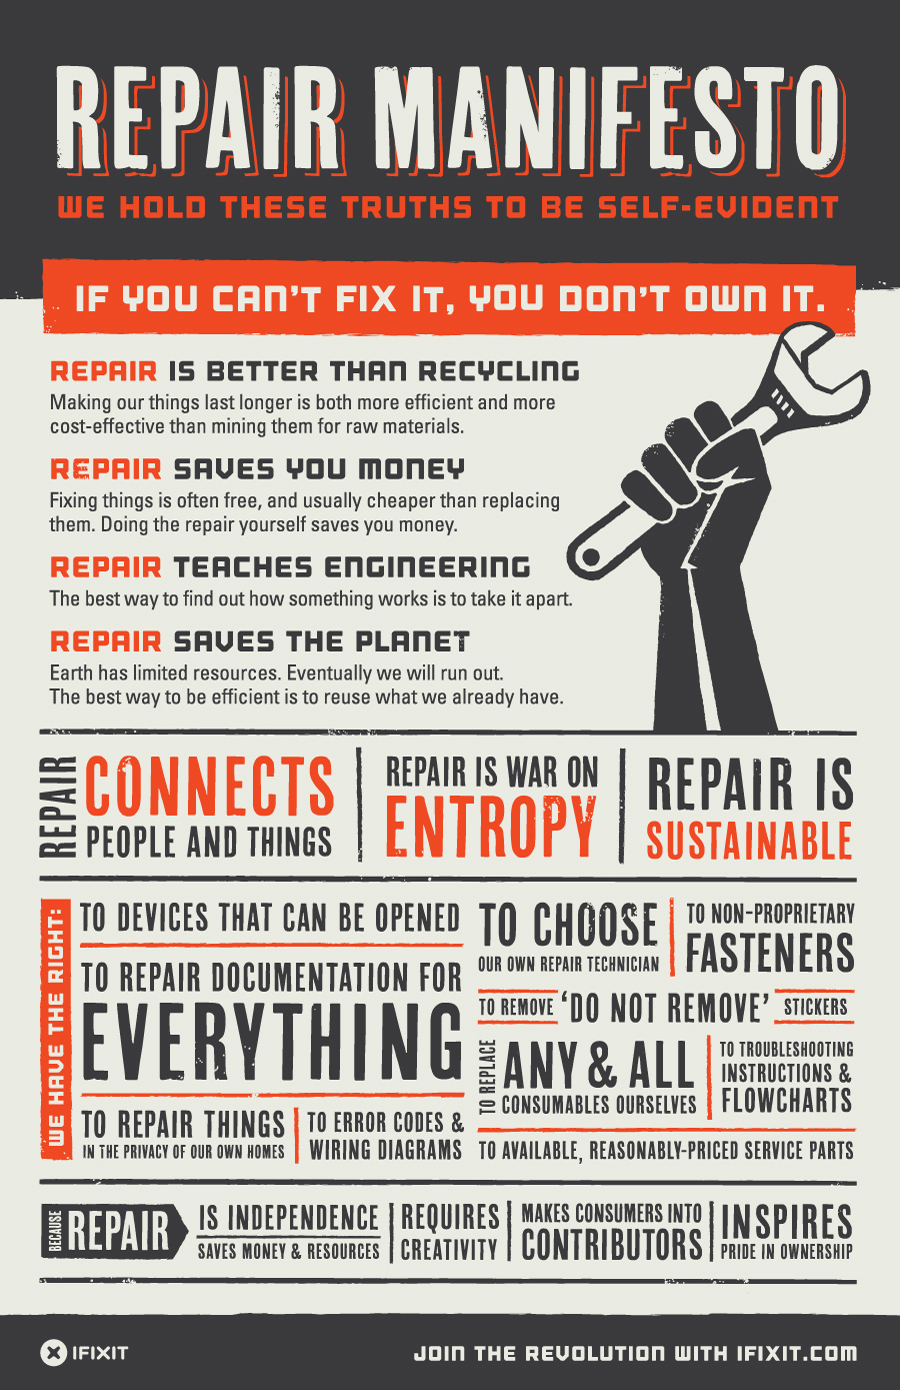 Ifixit Self-Repair Manifesto